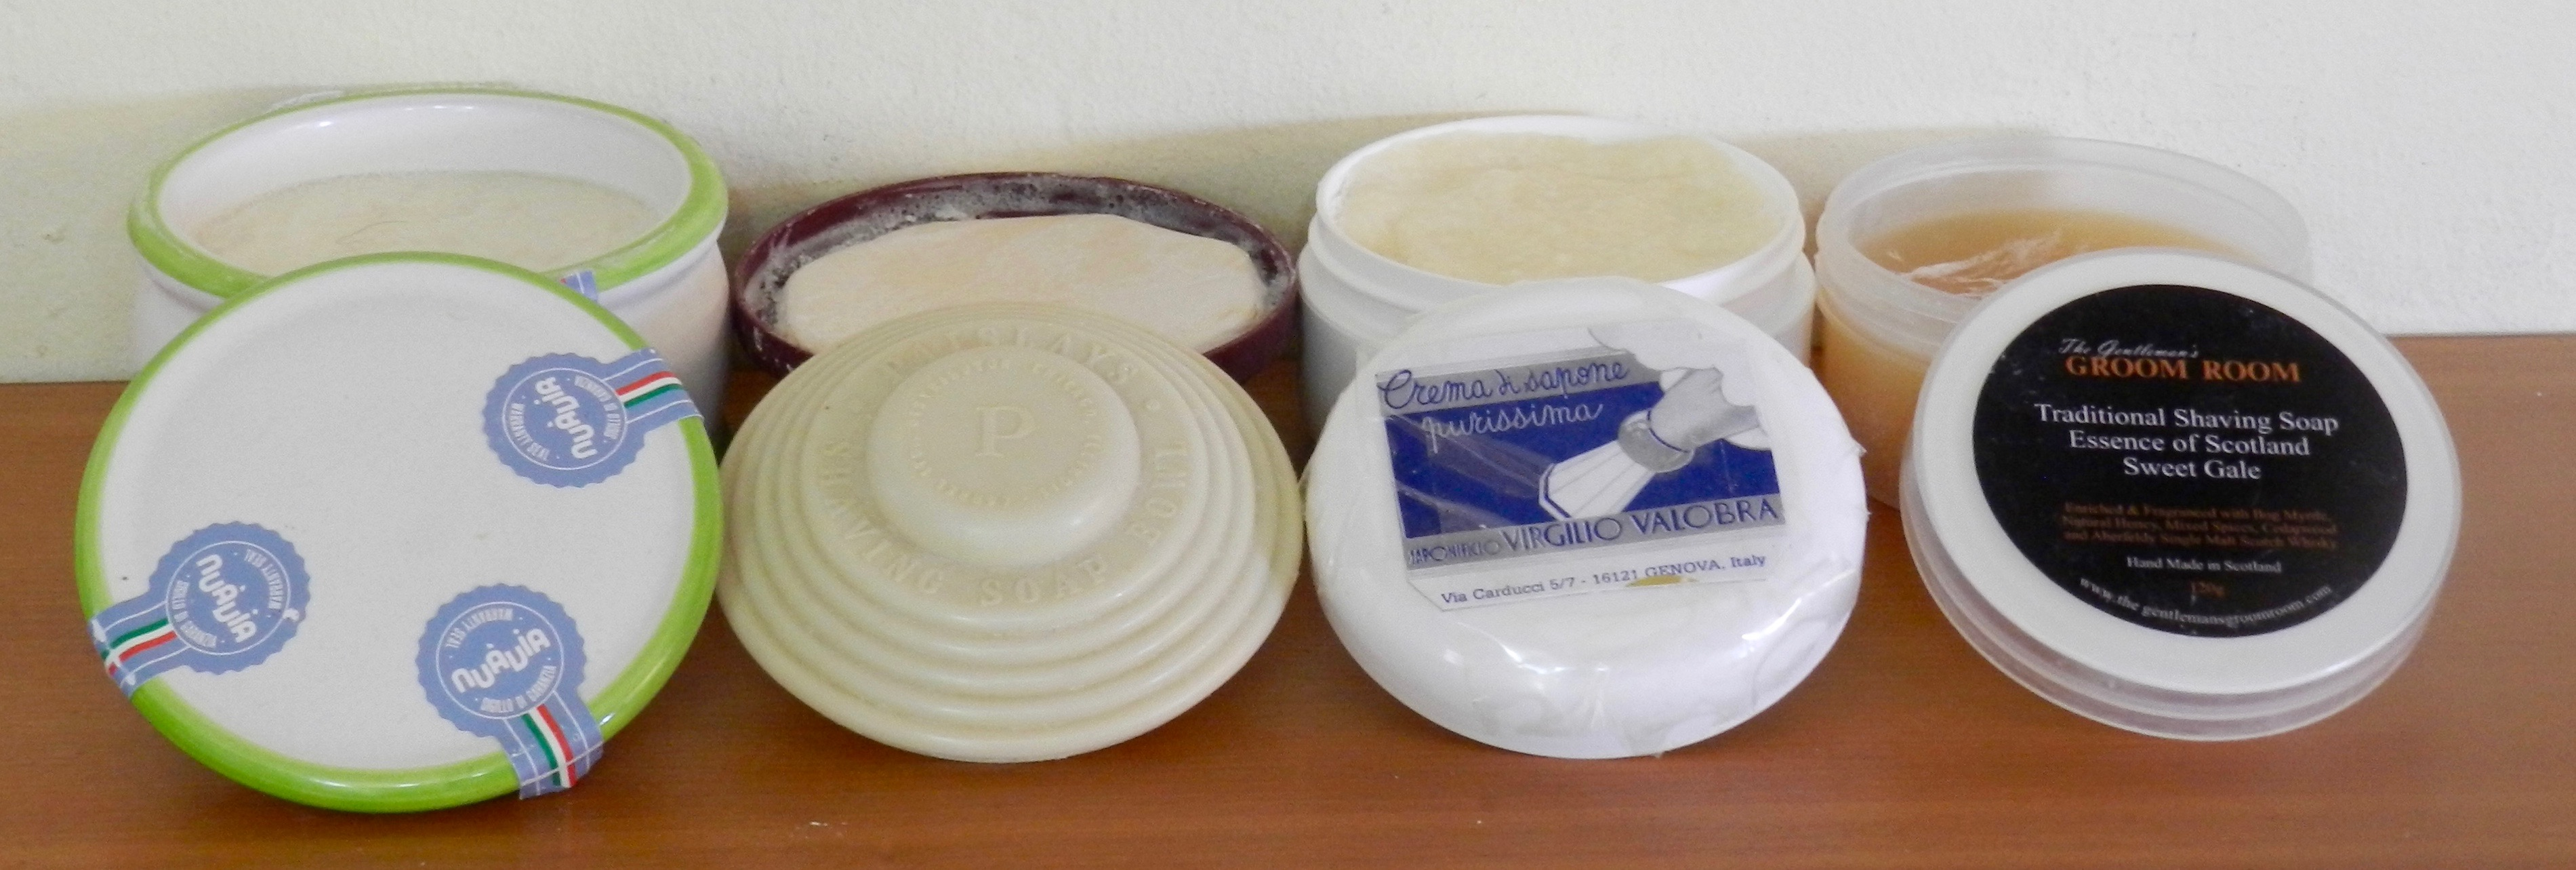 More Soaps And An Apothecary Mug Go To Auction Later On